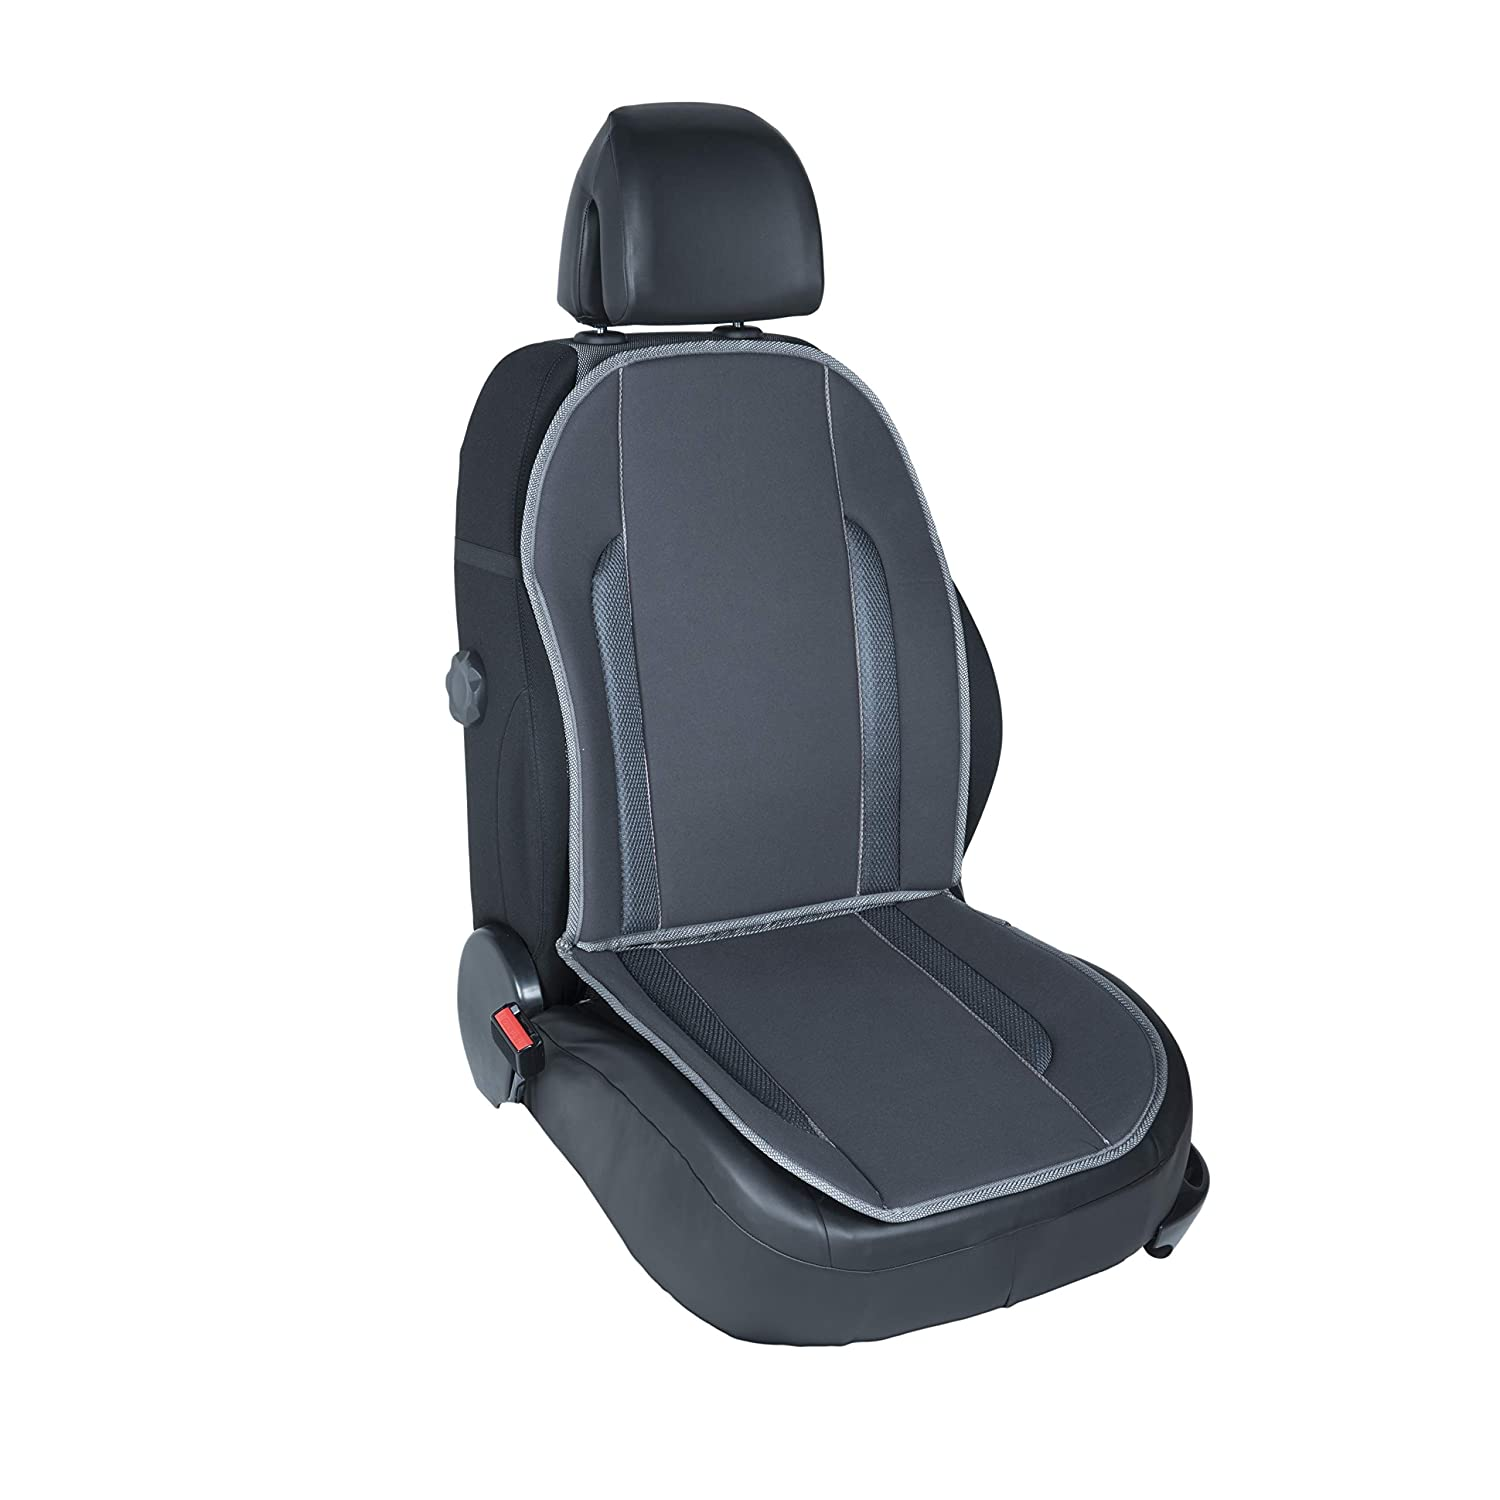 Universel Couvre Si/ège Antid/érapant Compatible Airbag Confort Gris DBS Voiture//Auto